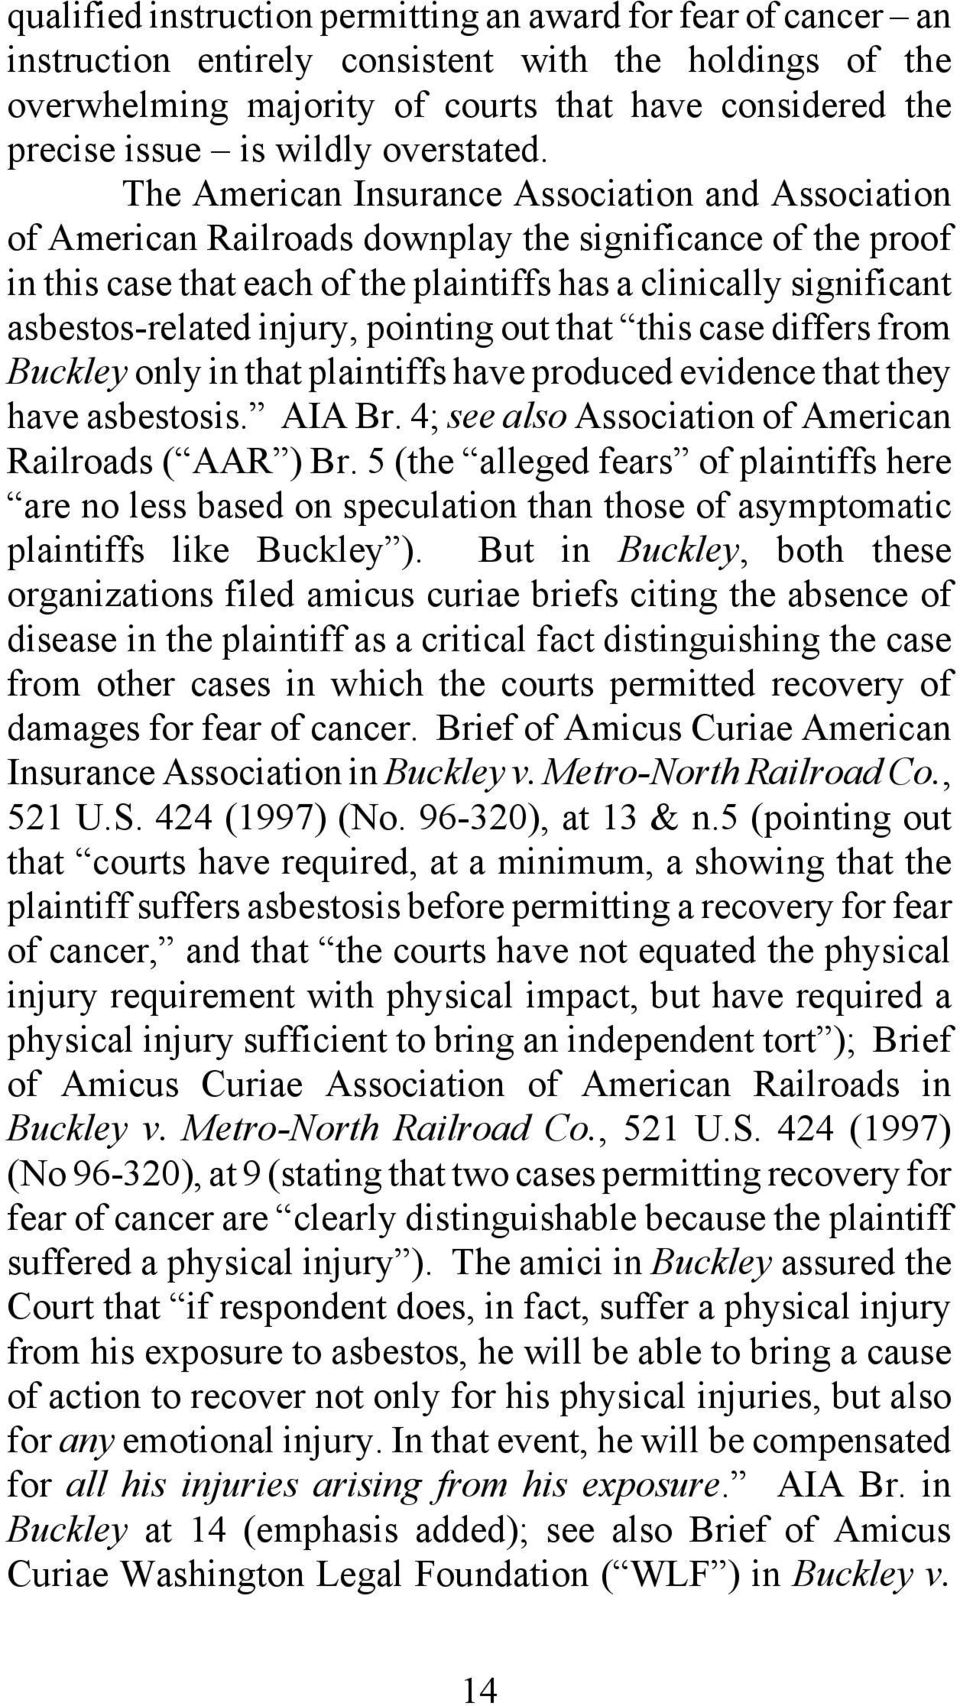 The American Insurance Association and Association of American Railroads downplay the significance of the proof in this case that each of the plaintiffs has a clinically significant asbestos-related